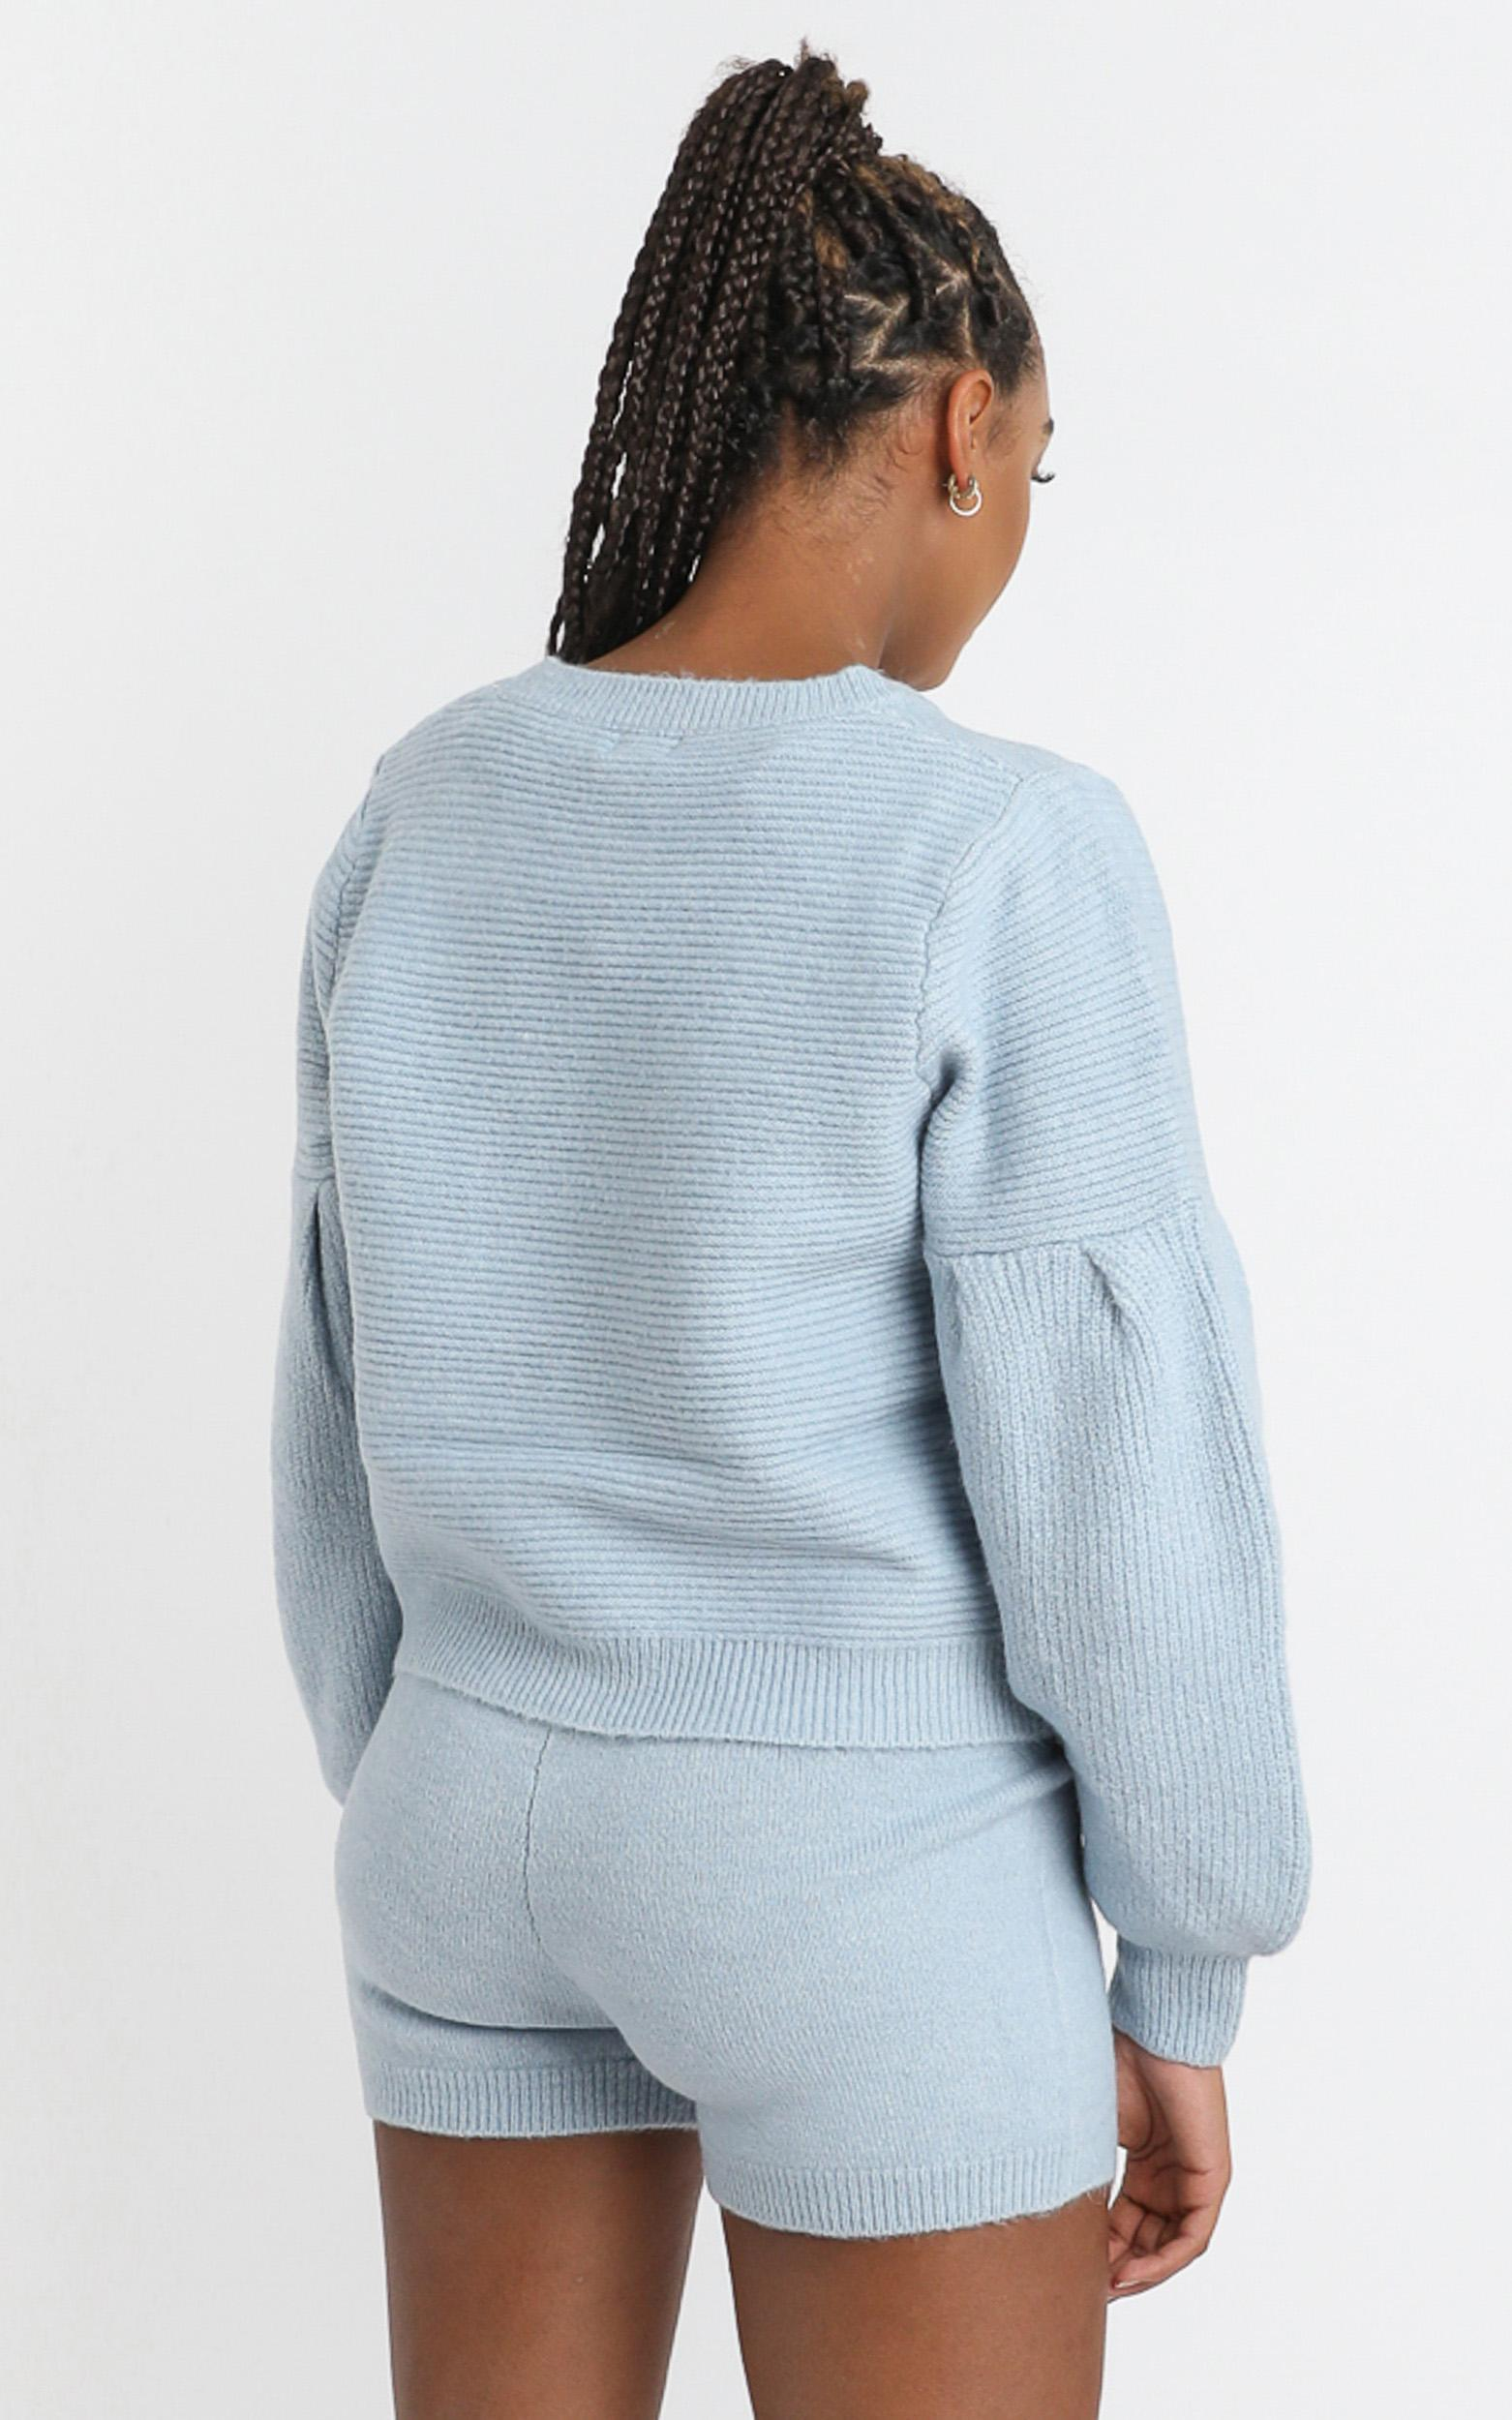 Siobhan Knit Shorts in Sky Blue - 8 (S), Blue, hi-res image number null